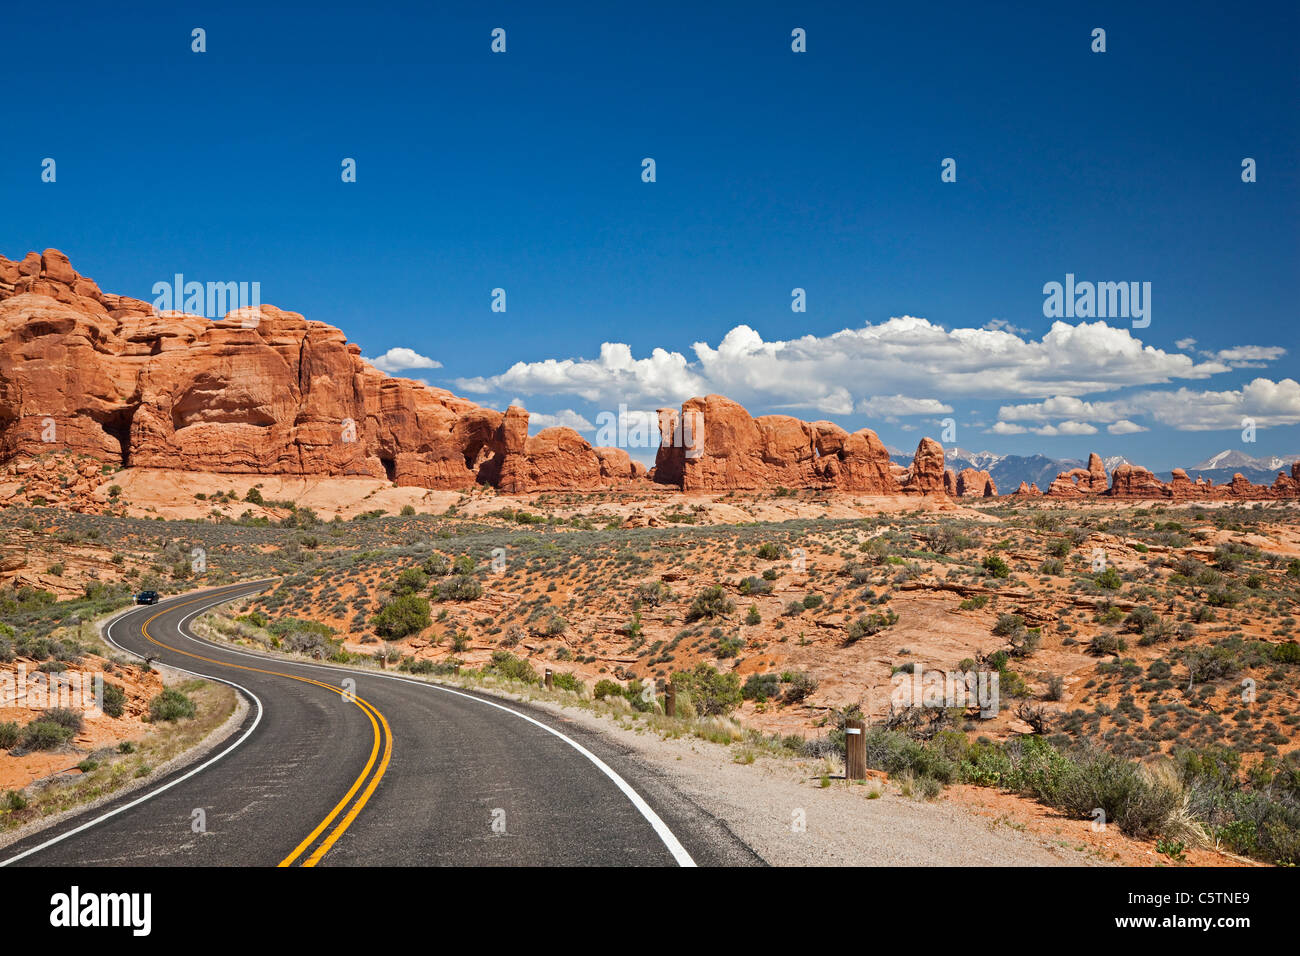 USA, Utah, Arches National Park, Road to the Windows Section - Stock Image